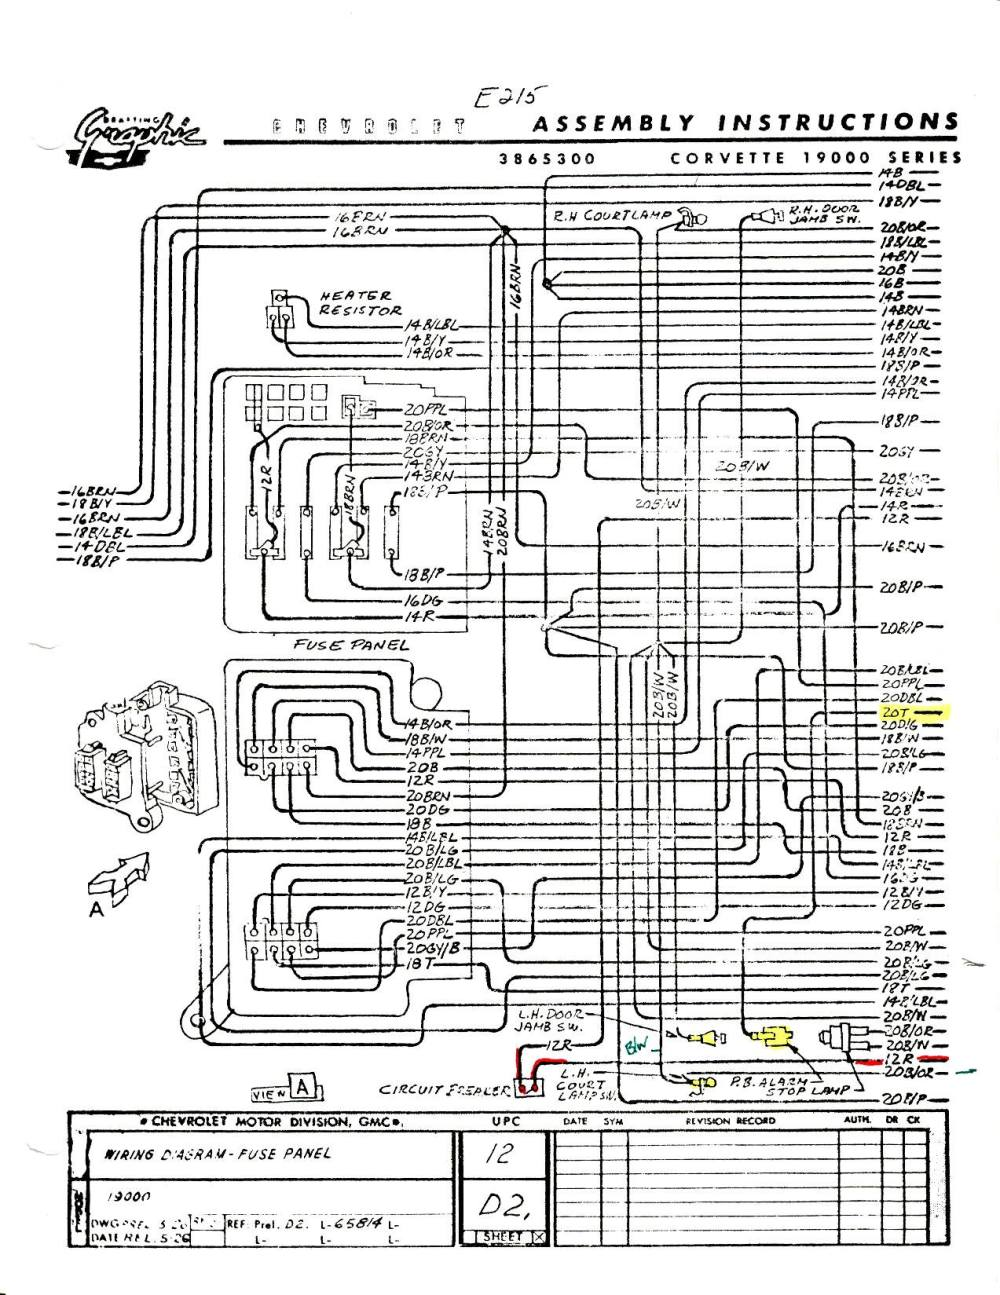 medium resolution of c4 corvette wiring diagram wiring diagram name c4 corvette wiring diagram help